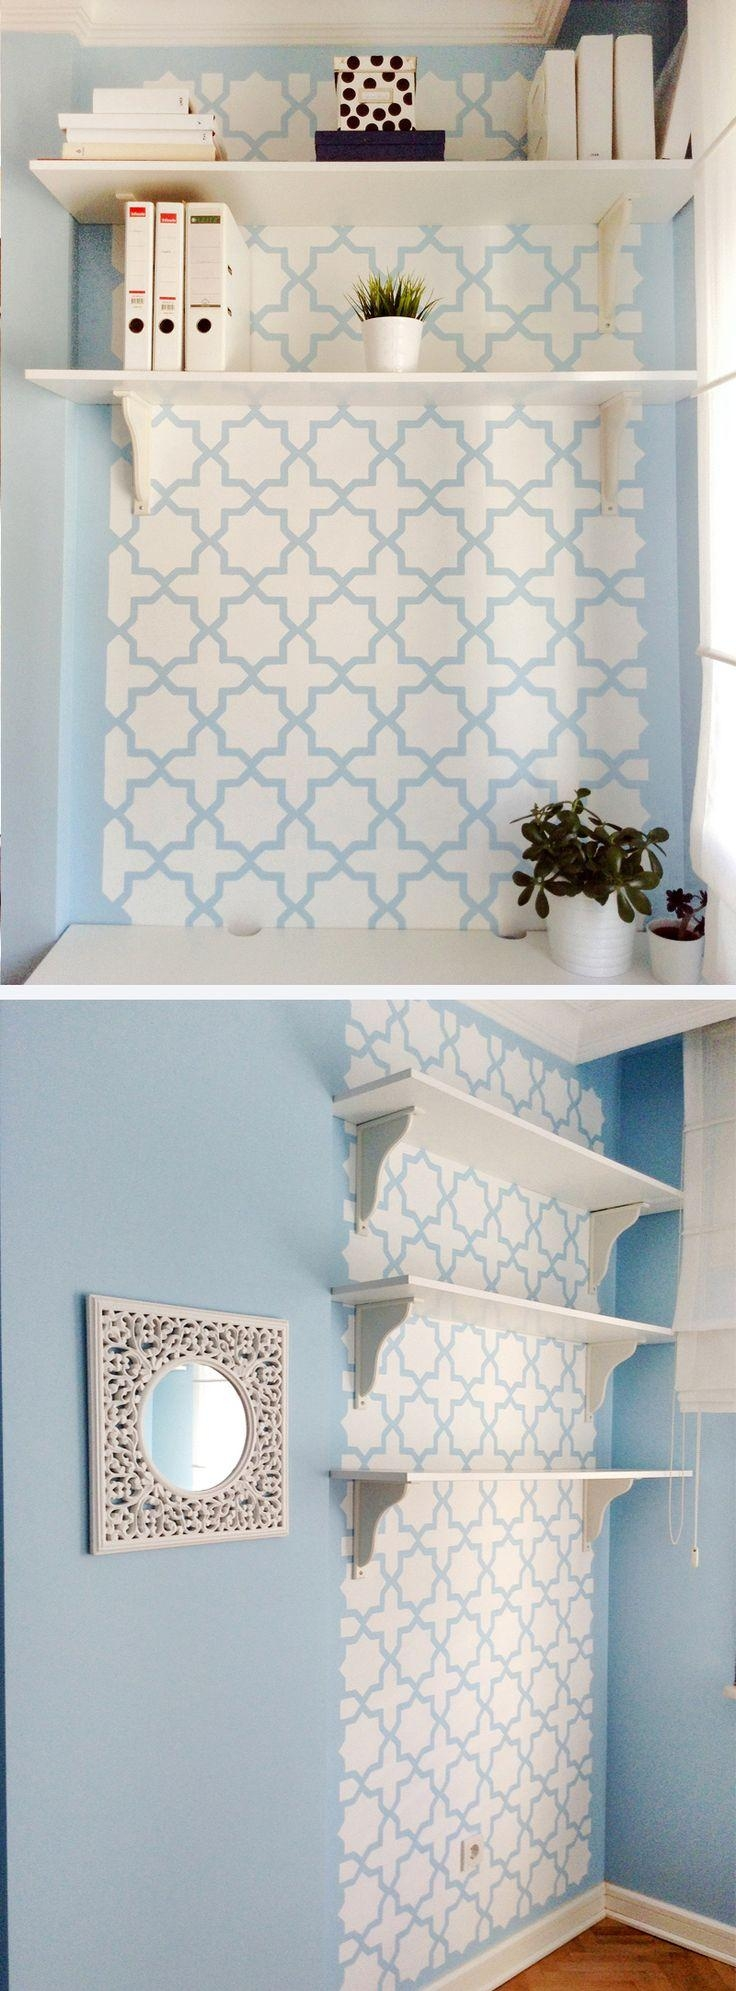 79 Best Interior: Sticker, Stencil Images On Pinterest | Wall For Space Stencils For Walls (View 5 of 20)